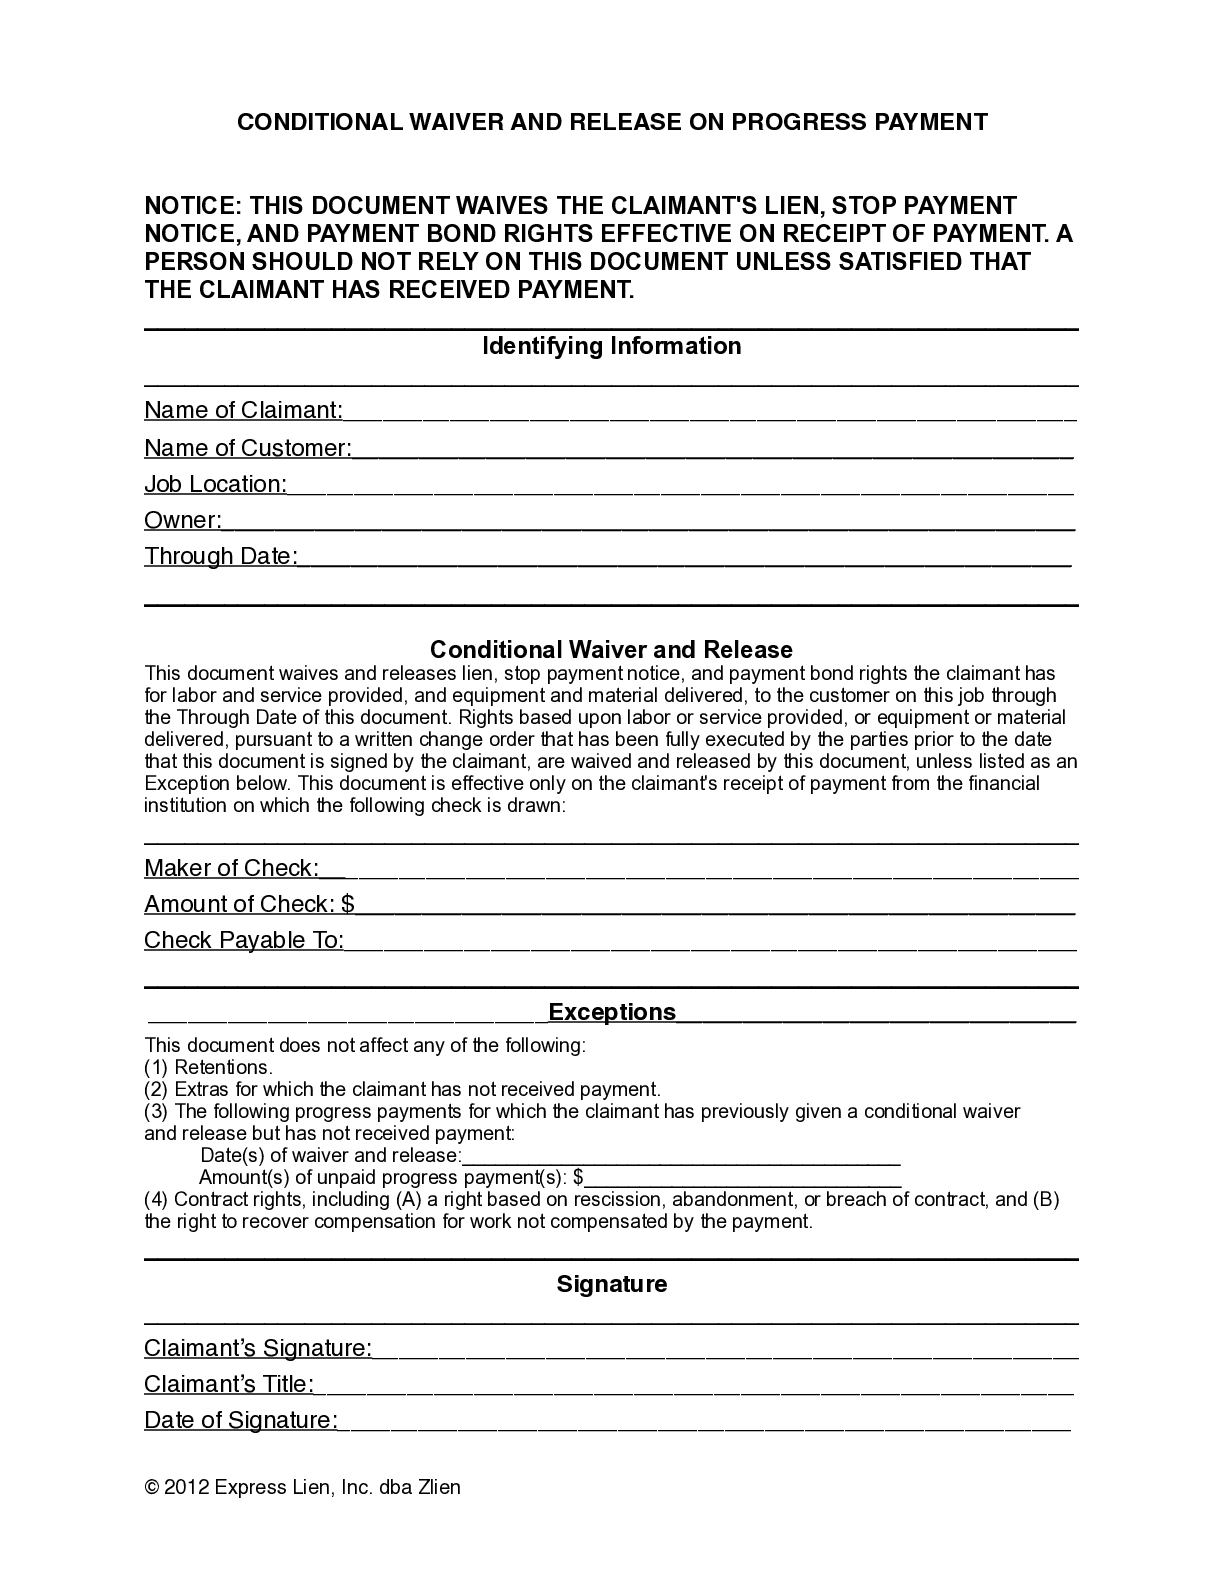 North Carolina Partial Conditional Lien Waiver Form